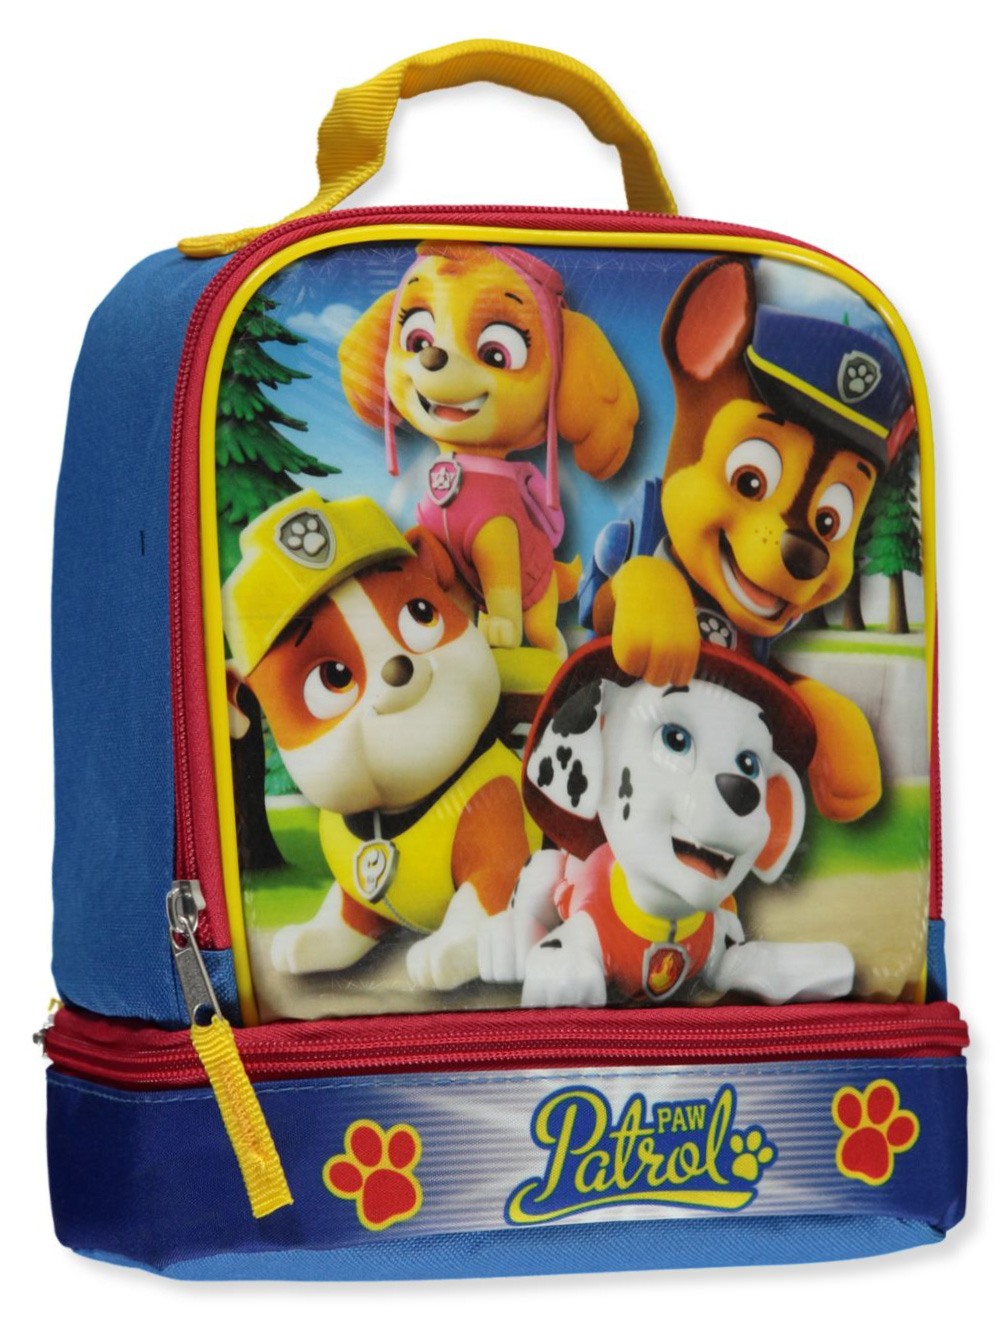 Paw Patrol Lunch Boxes